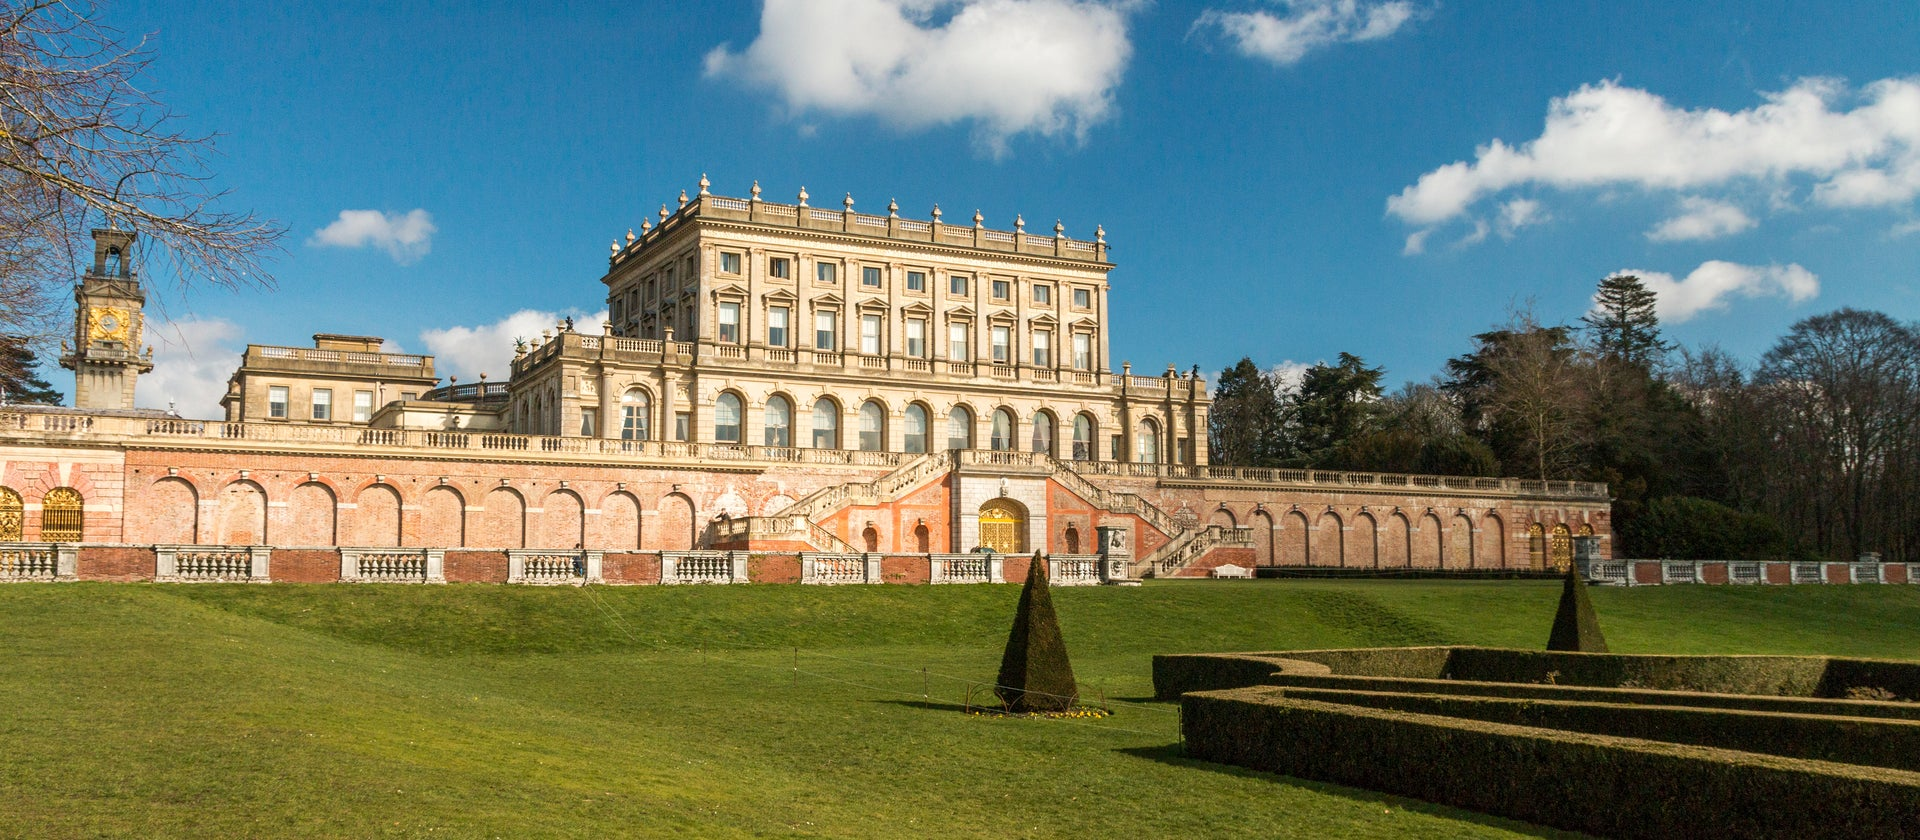 Review: Cliveden House